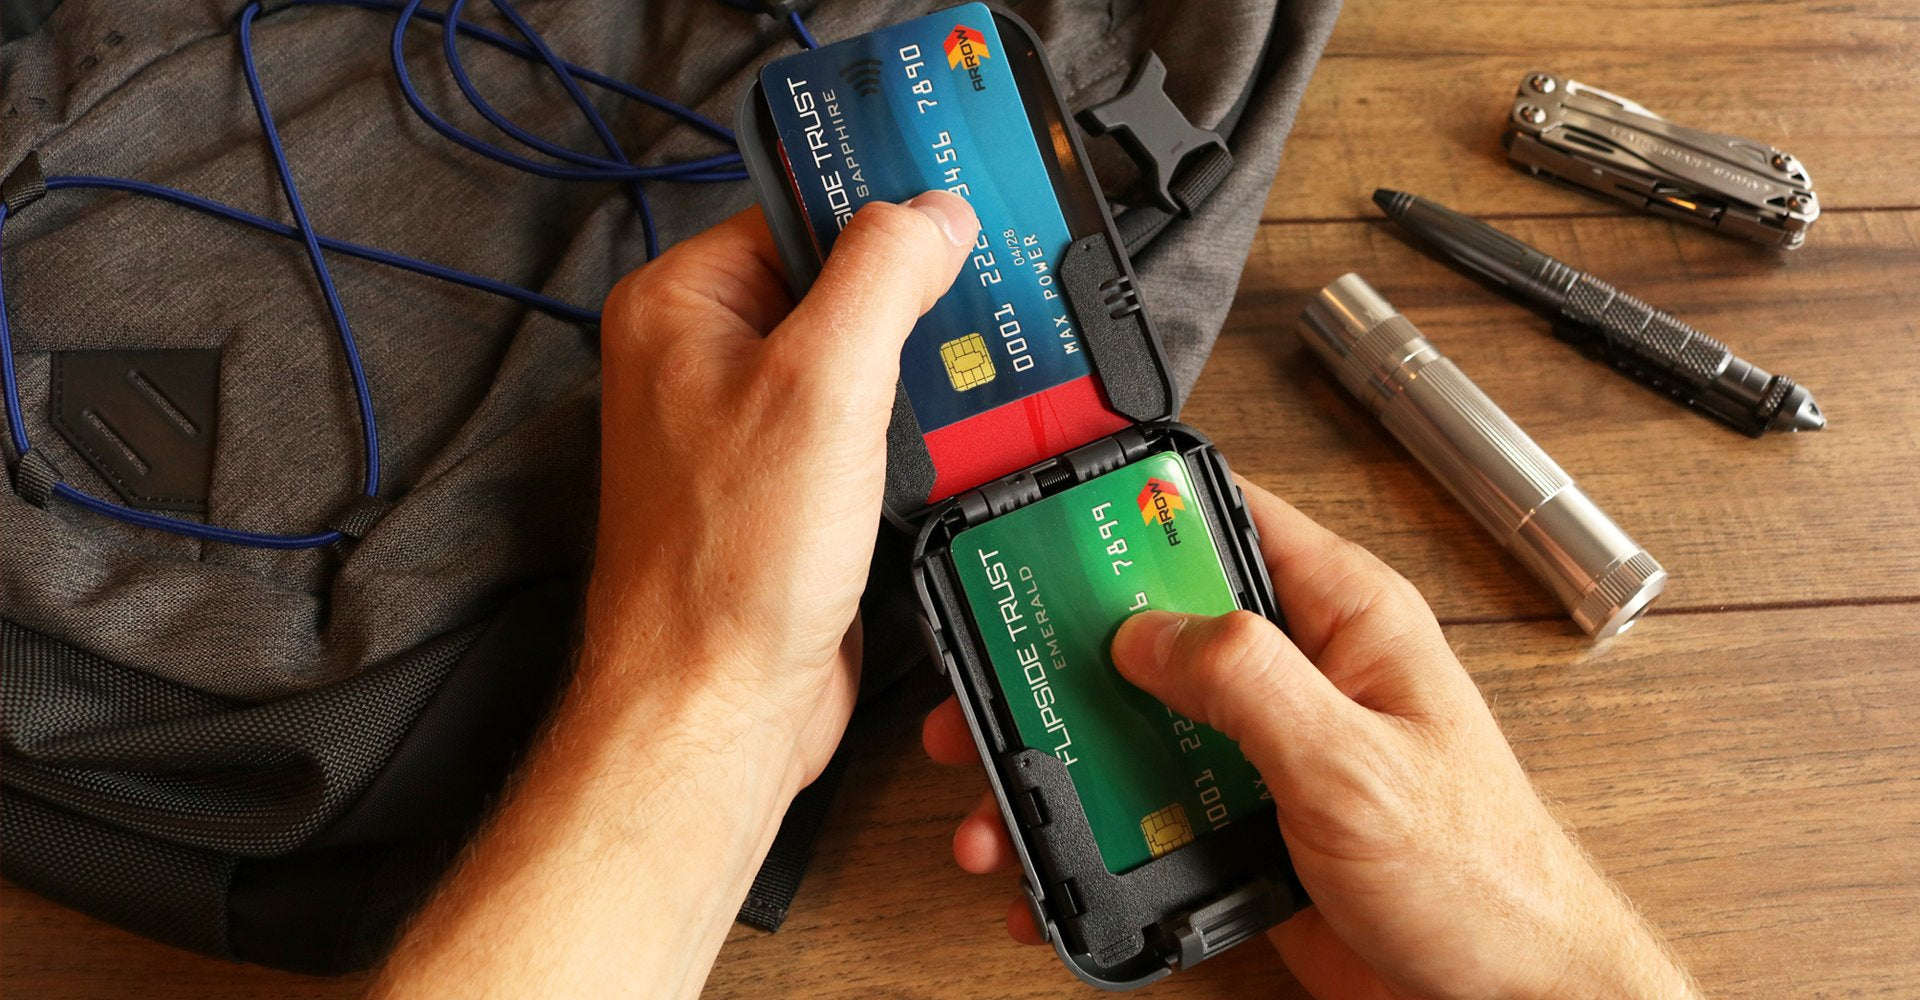 An rfid secure wallet that locks shut and flips itself open